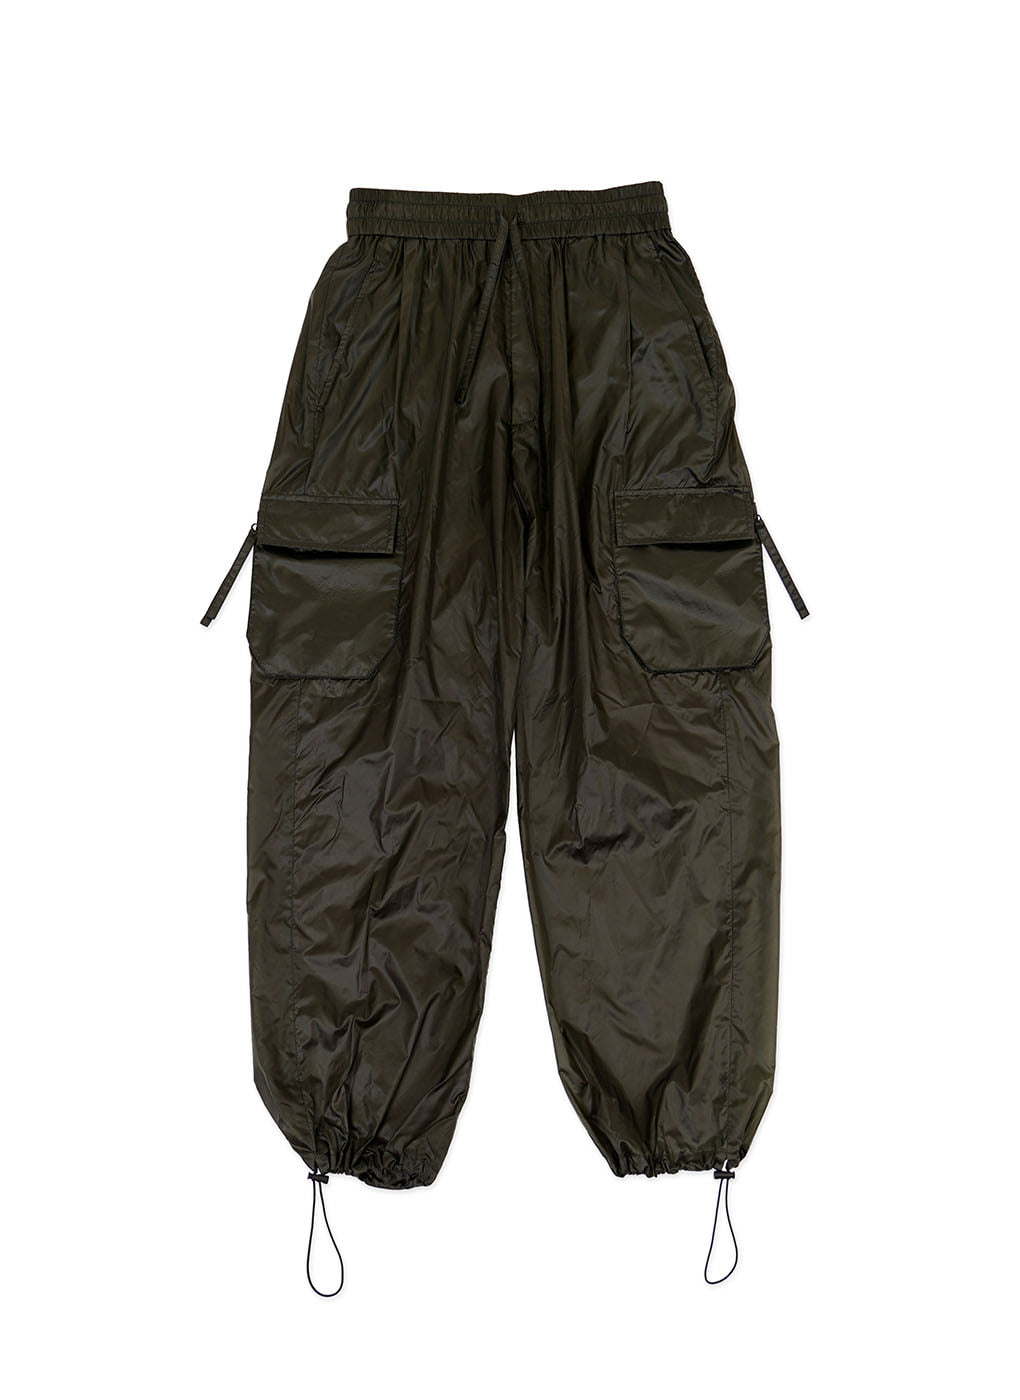 Khaki Super Light Weight Cargo Service Pants